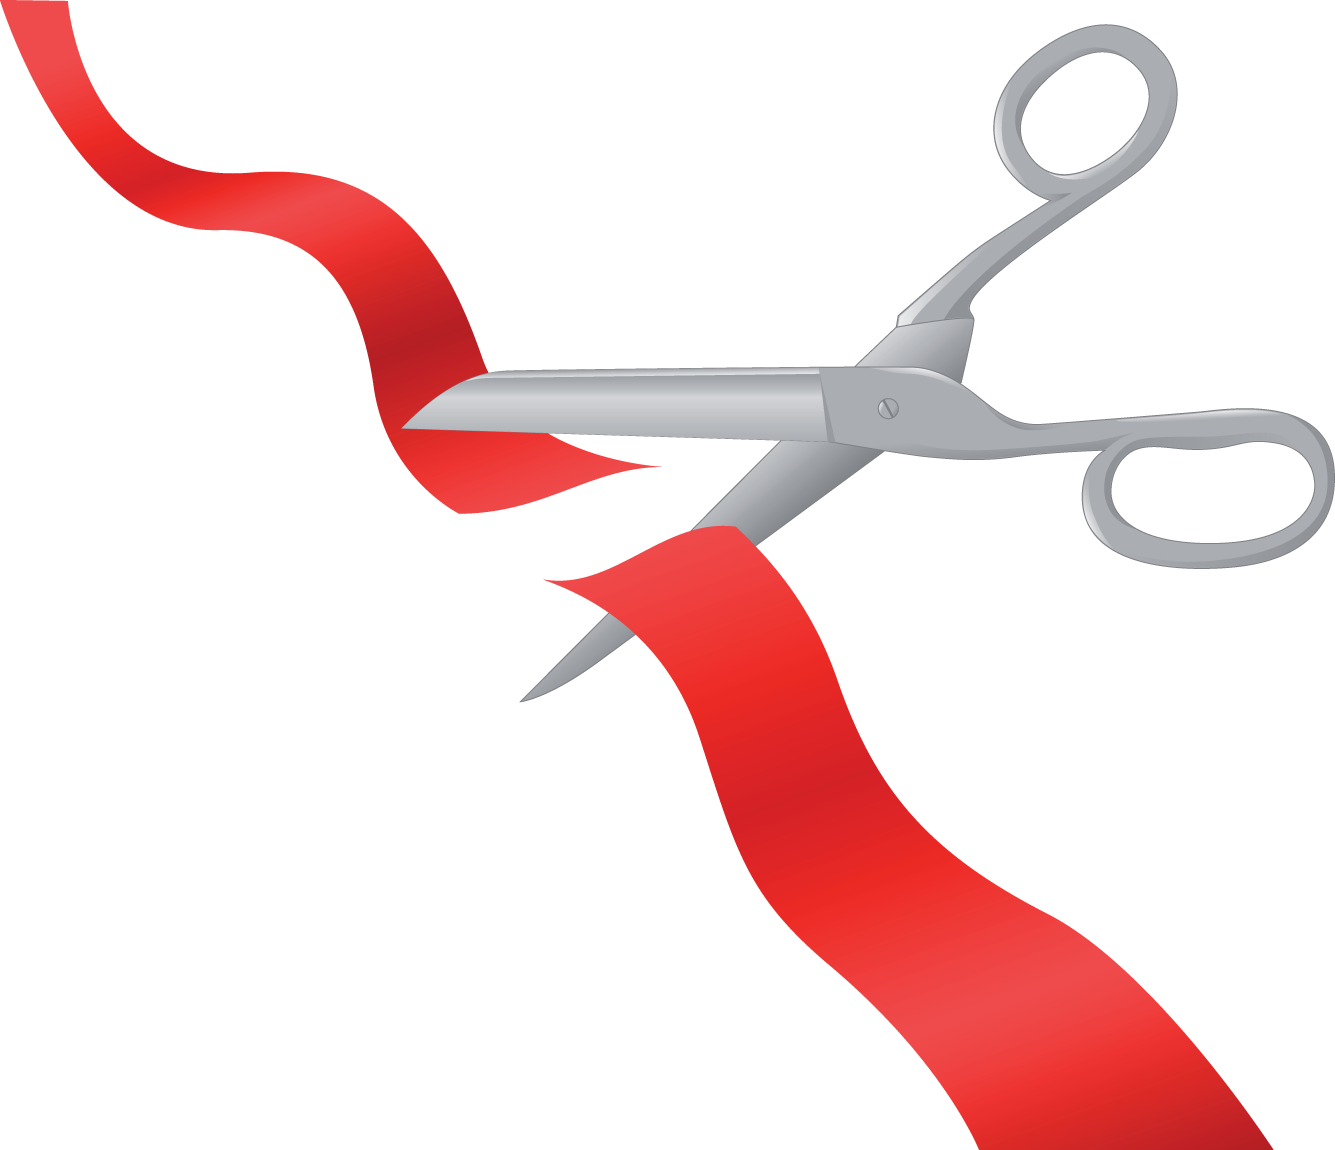 Ribbon Cutting Vector